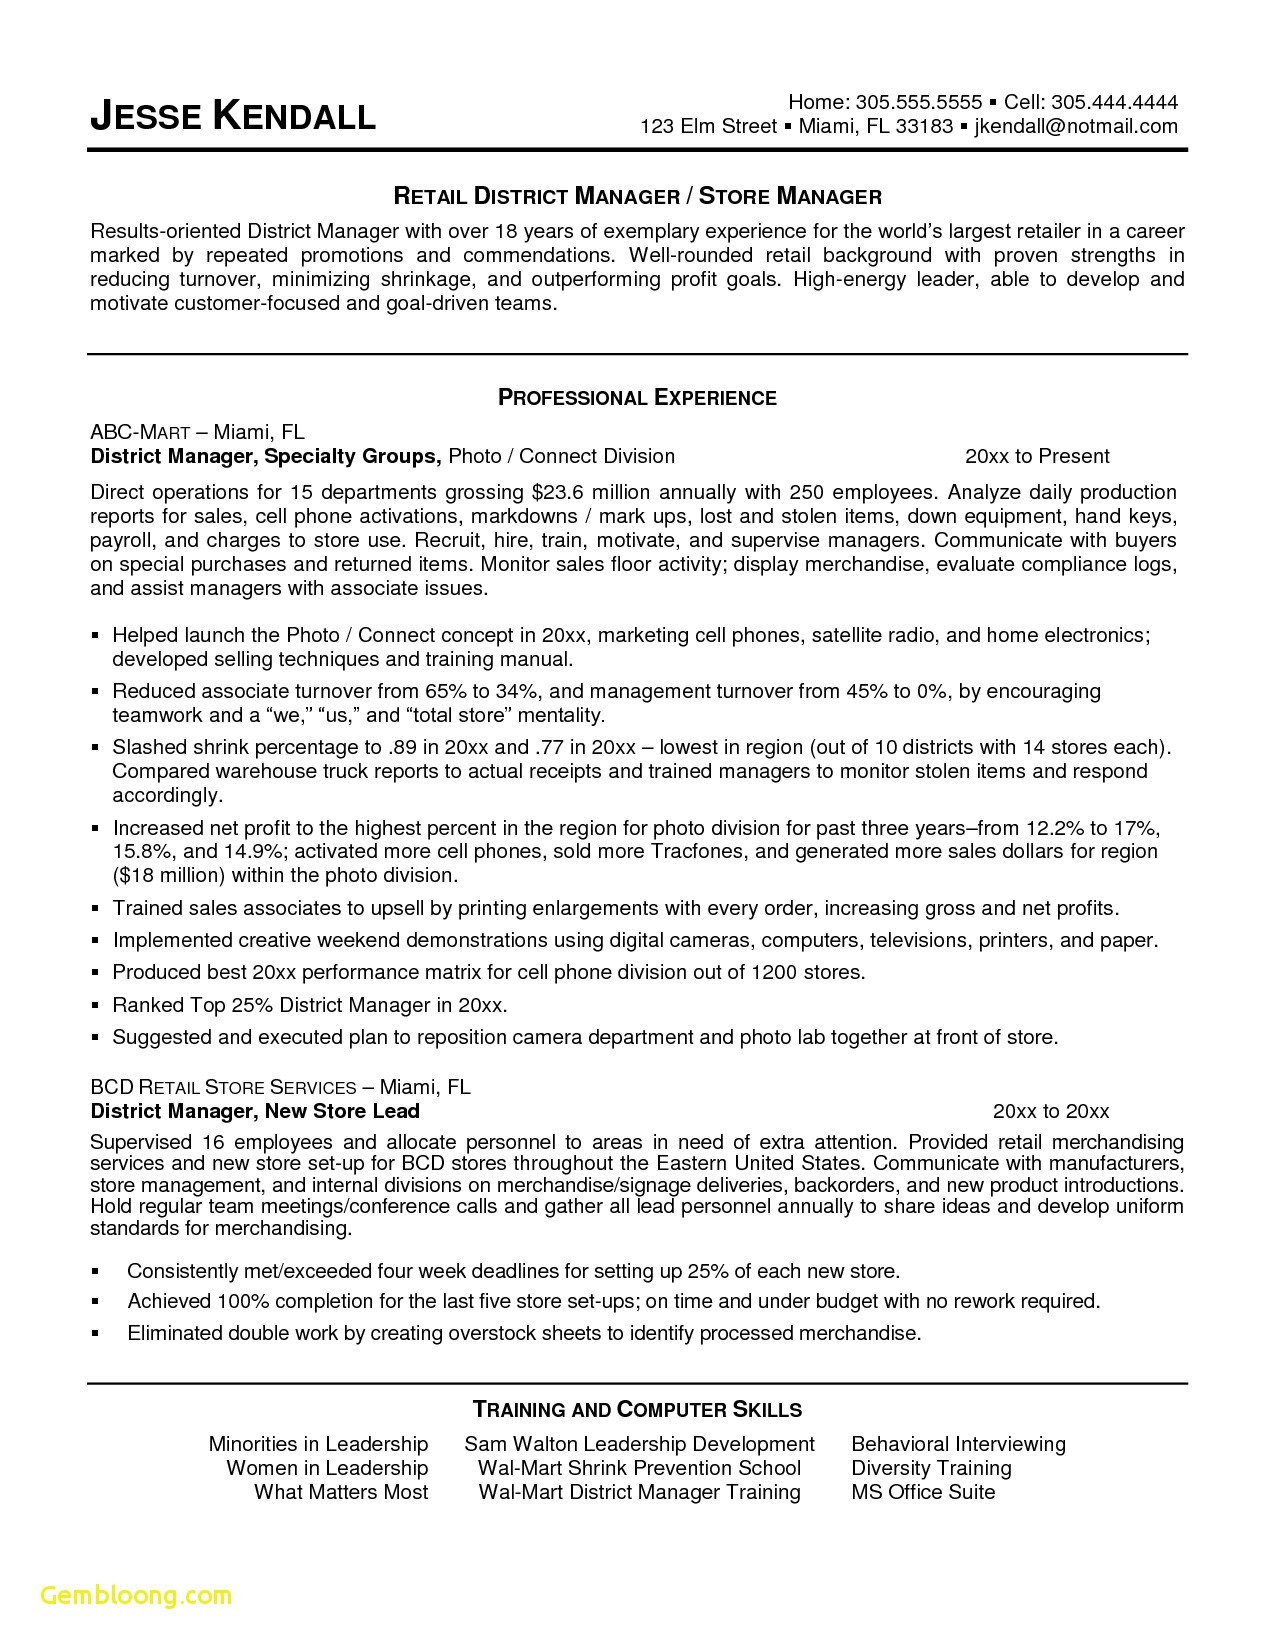 Office Manager Resume Template - Customer Service Manager Resume Unique Fresh Grapher Resume Sample